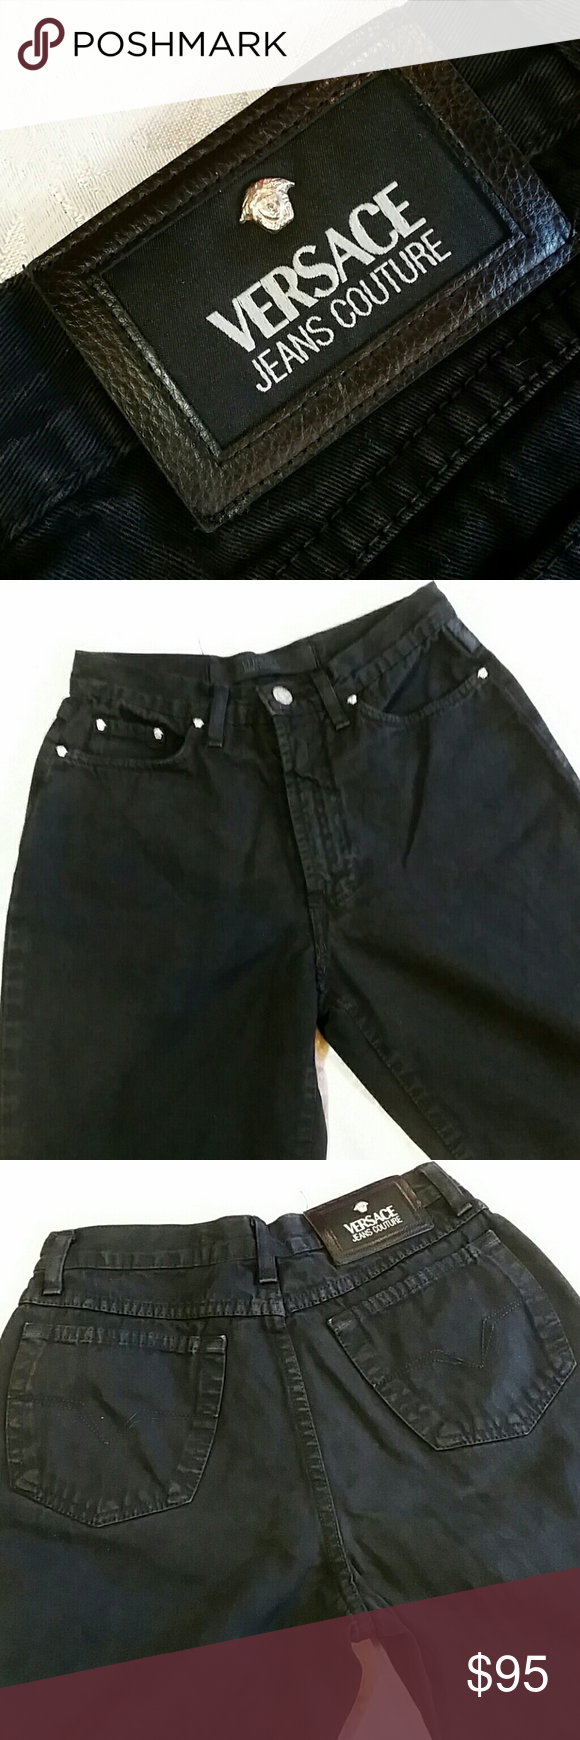 dbd86d3e3e857 Vintage Versace Mom Jeans Black vintage 90 s high waisted tapered leg jeans  known today as